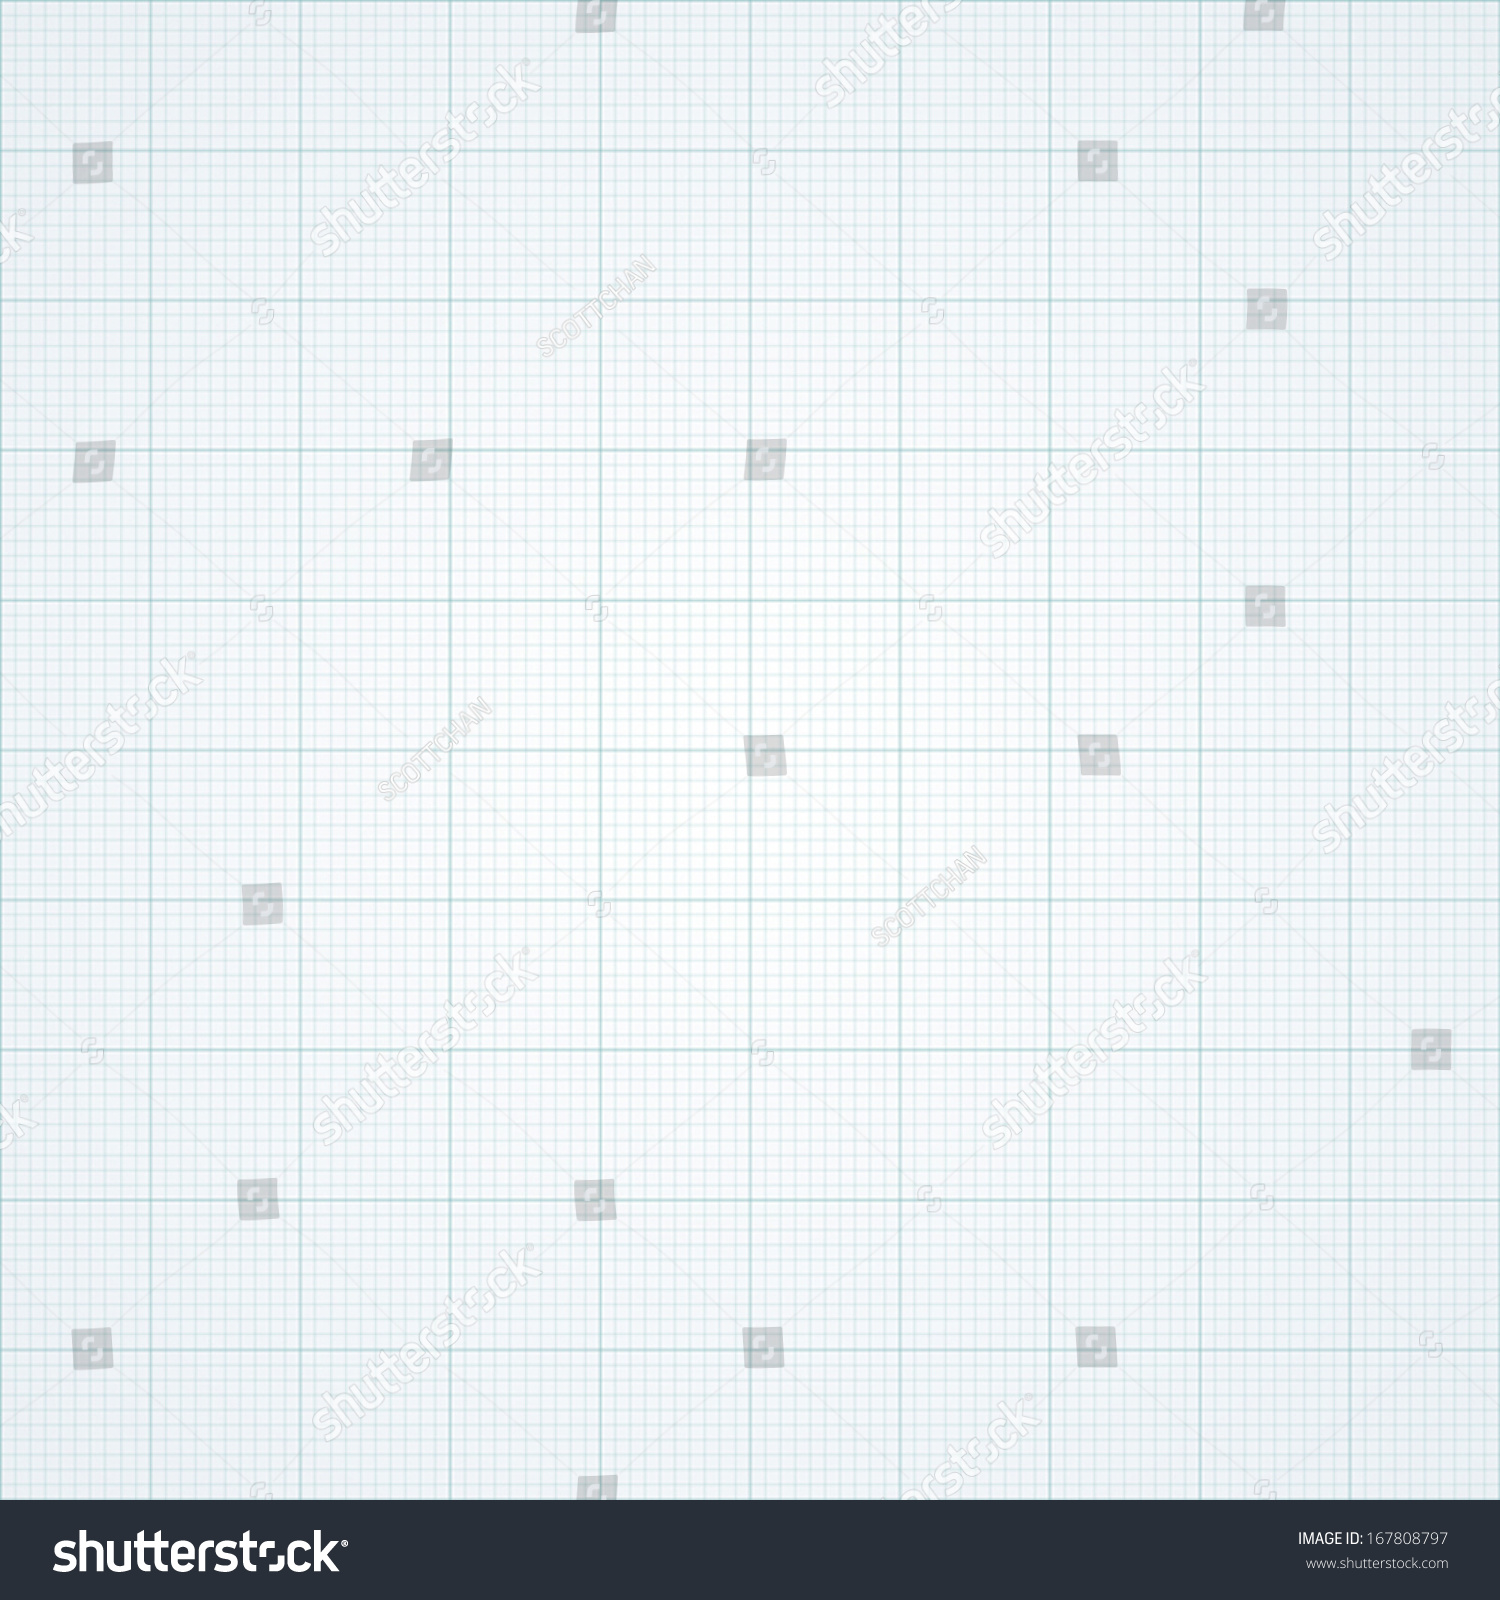 Graph Grid Paper Vector Illustration 167808797